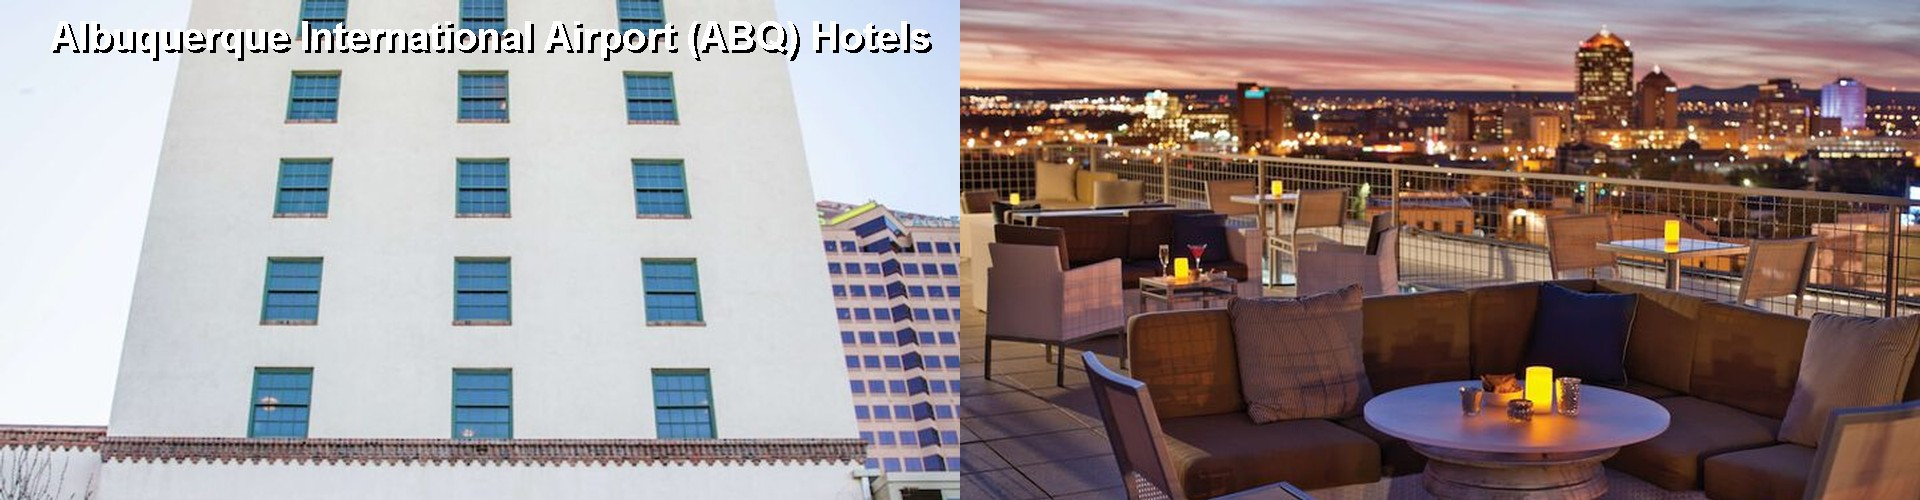 Hotels Near Albuquerque International Airport (ABQ) NM ✈